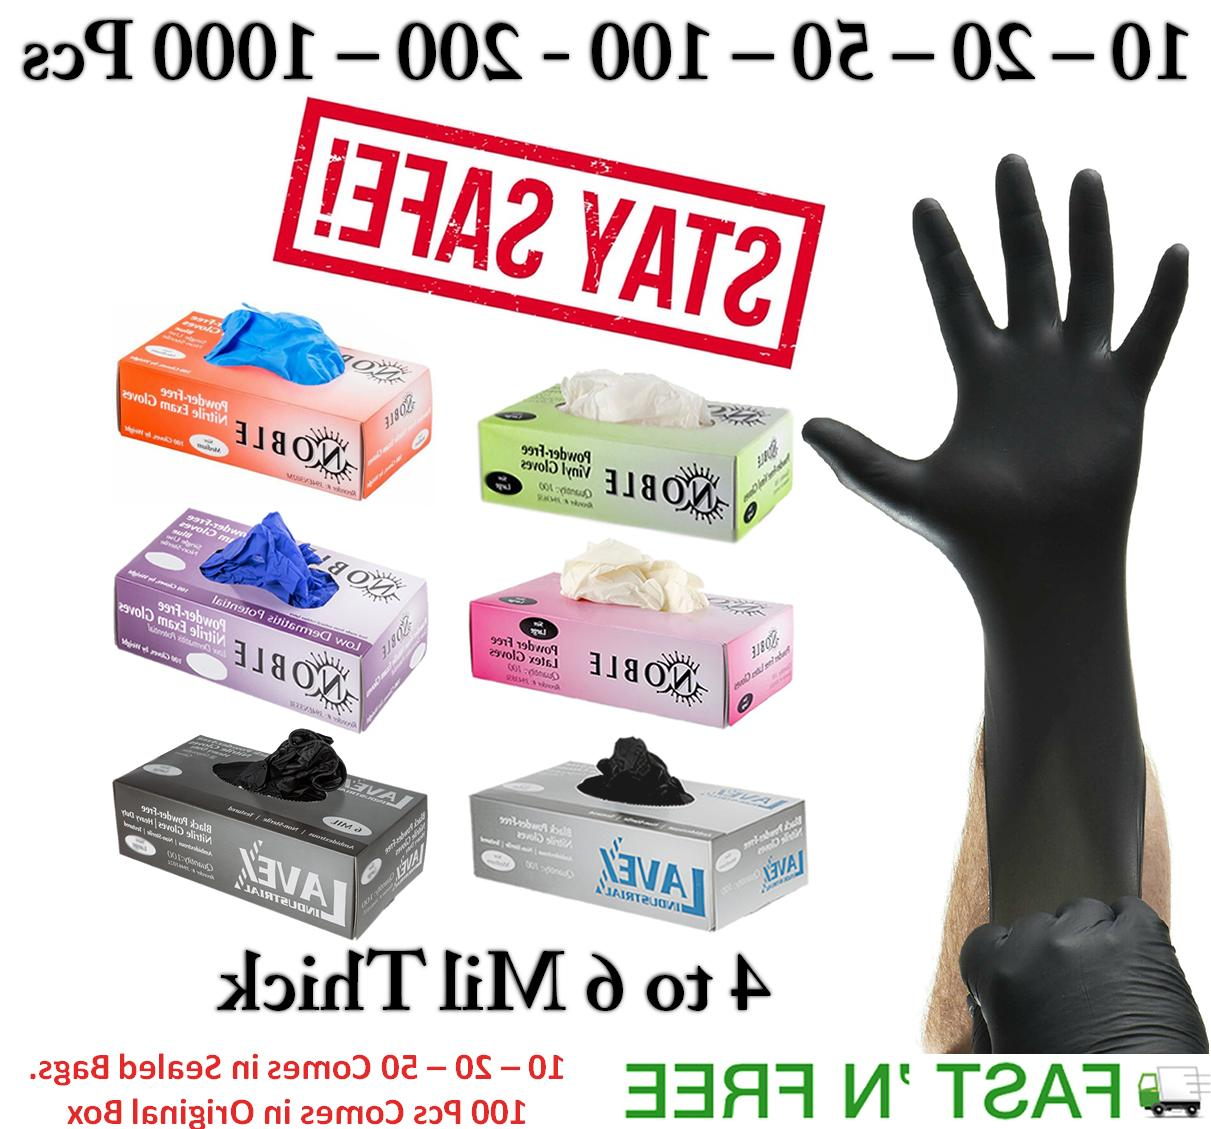 GLOVES NITRILE 10-20 -100- POWDER FREE TO 6 THICK